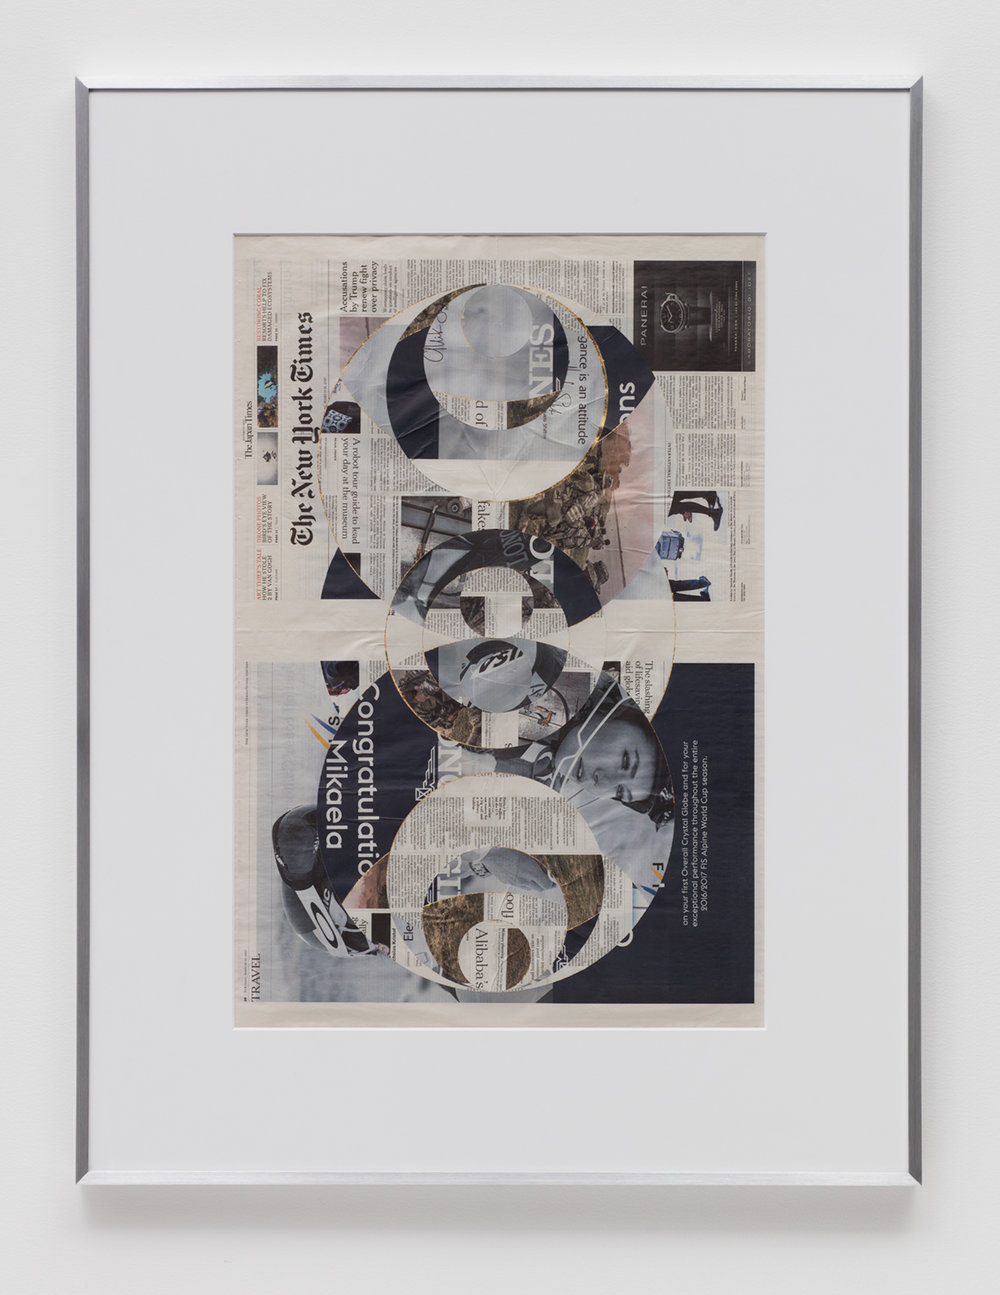 Blind Collage (Four 180º Rotations, The New York Times International Edition Distributed with The Japan Times, Tuesday, March 21, 2017)   2017  Newspaper, tape, and 22 karat gold leaf  43 5/8 x 33 1/8 inches   Blind Collages, 2017–    Transparencies, 2017    Equivalents, 2018